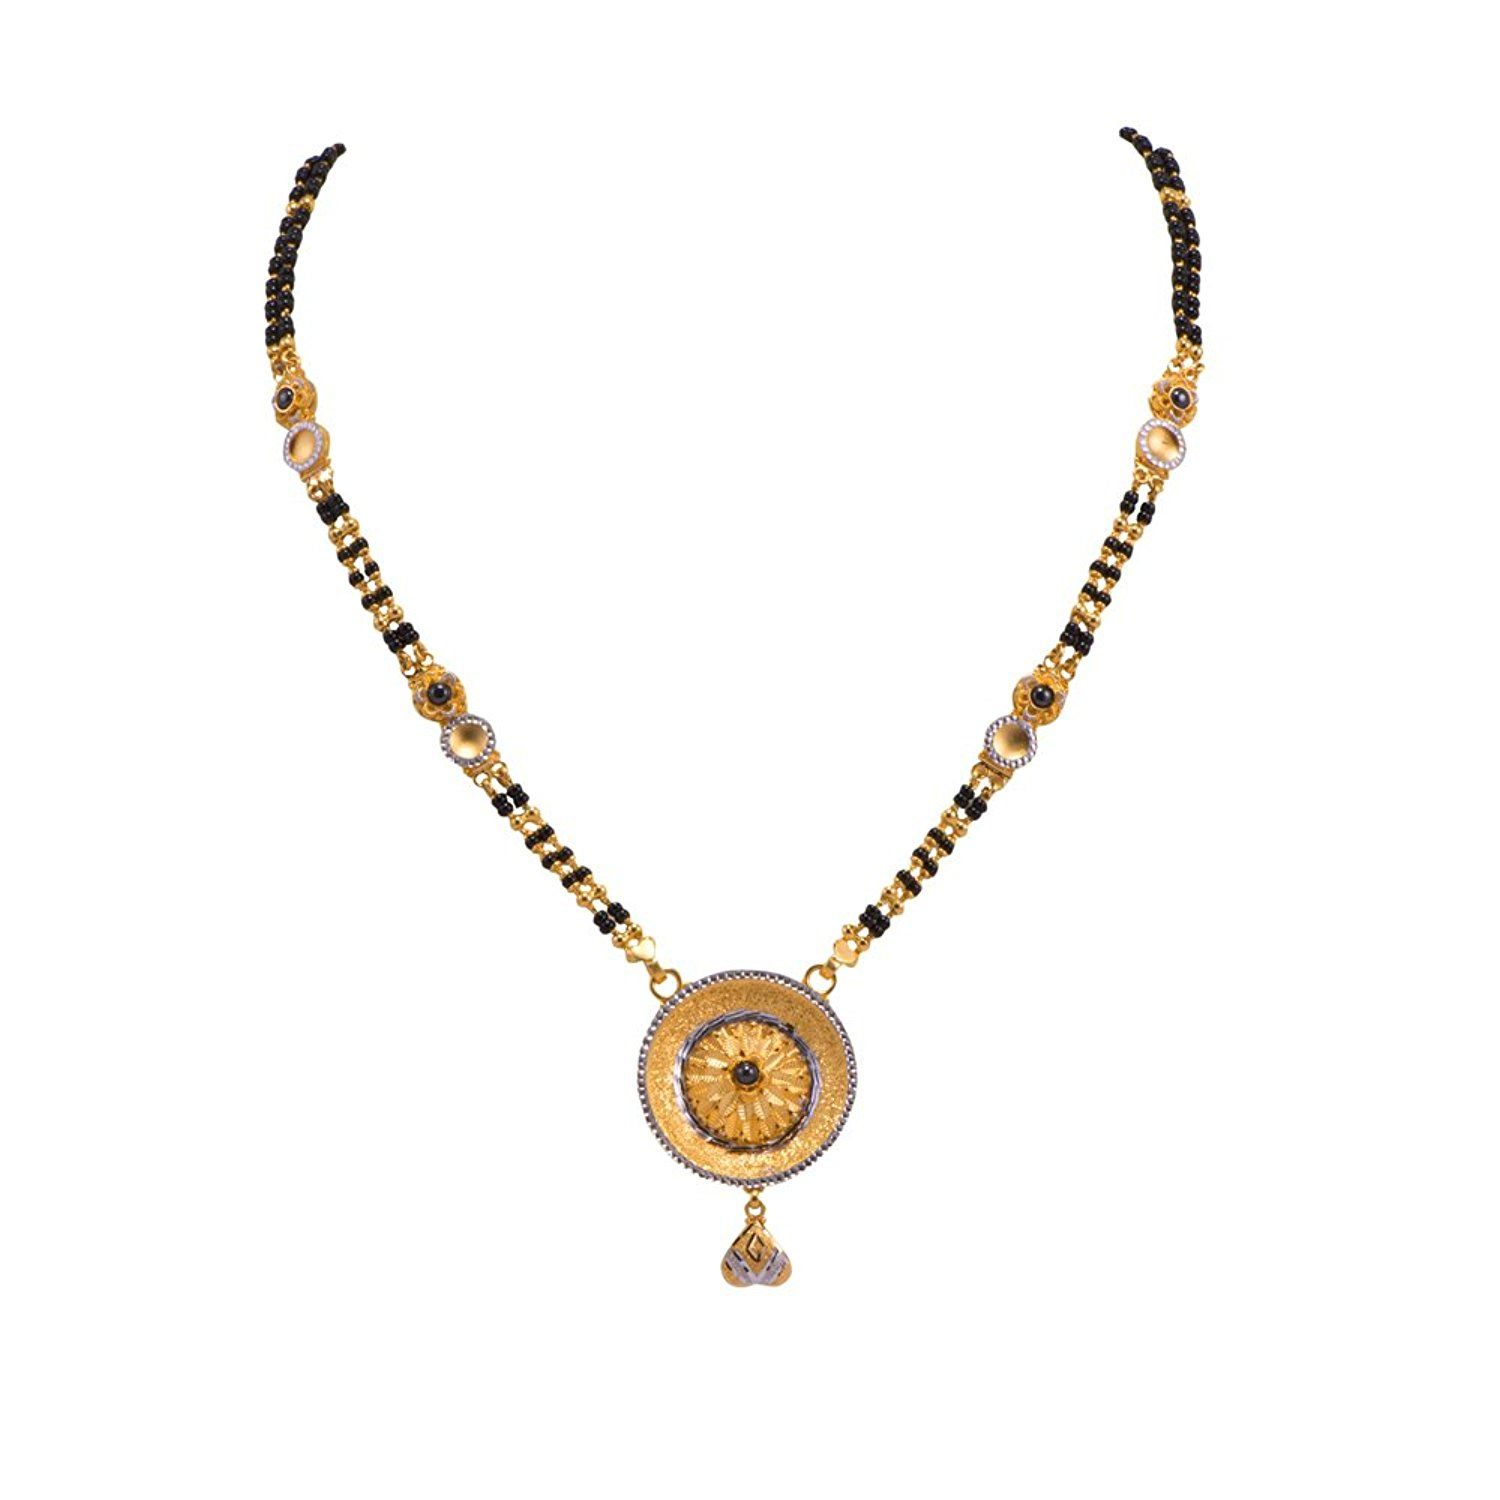 Nallapusalu Models In Joyalukkas South India Jewels Gold Mangalsutra Mangalsutra Designs Jewels